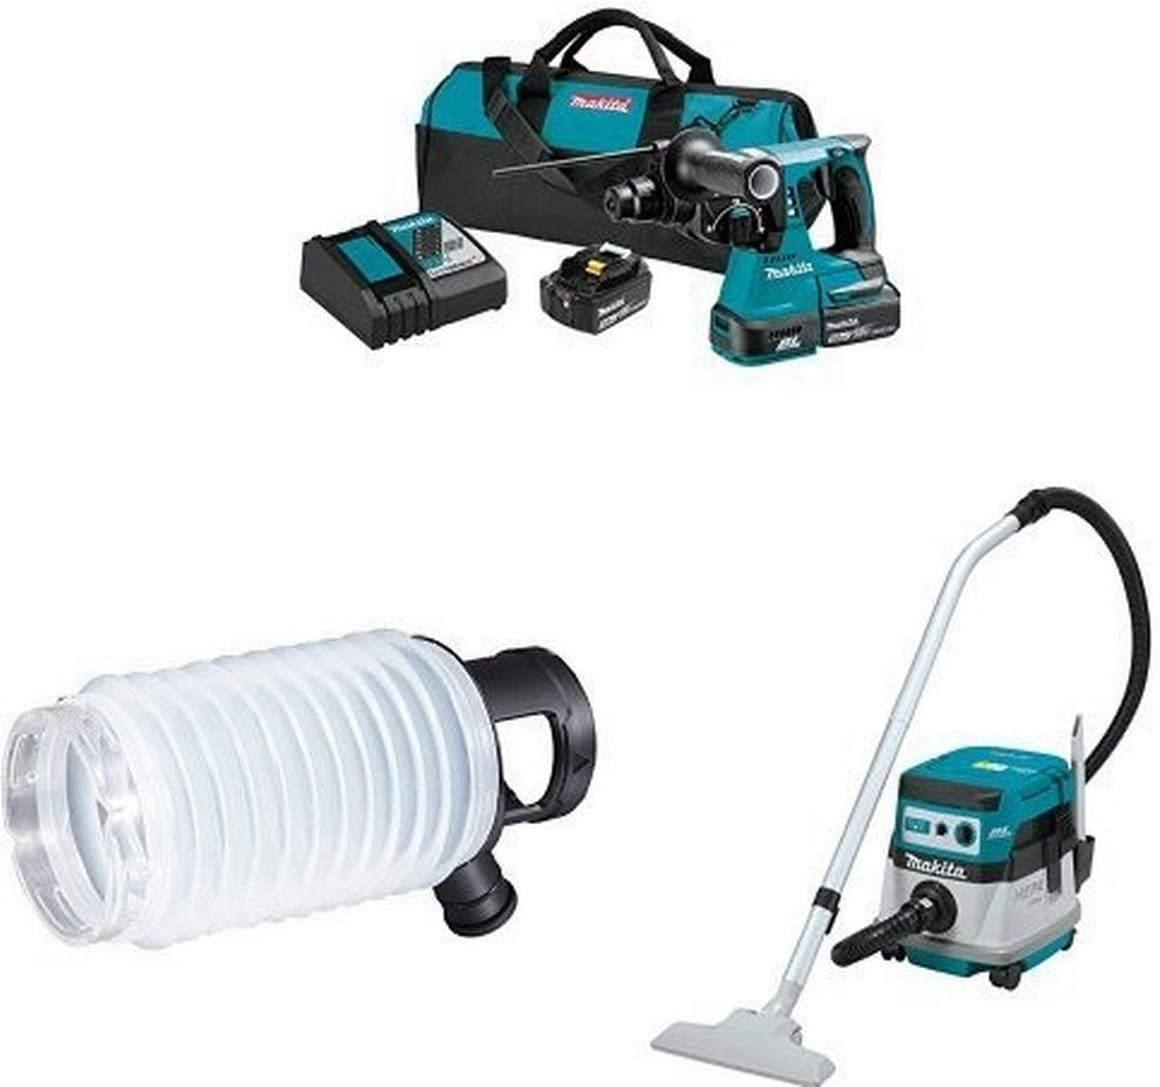 Makita XRH01T Super Special SALE held 18V LXT Popular shop is the lowest price challenge Brushless Kit 1-Inch Rotary 195173 Hammer